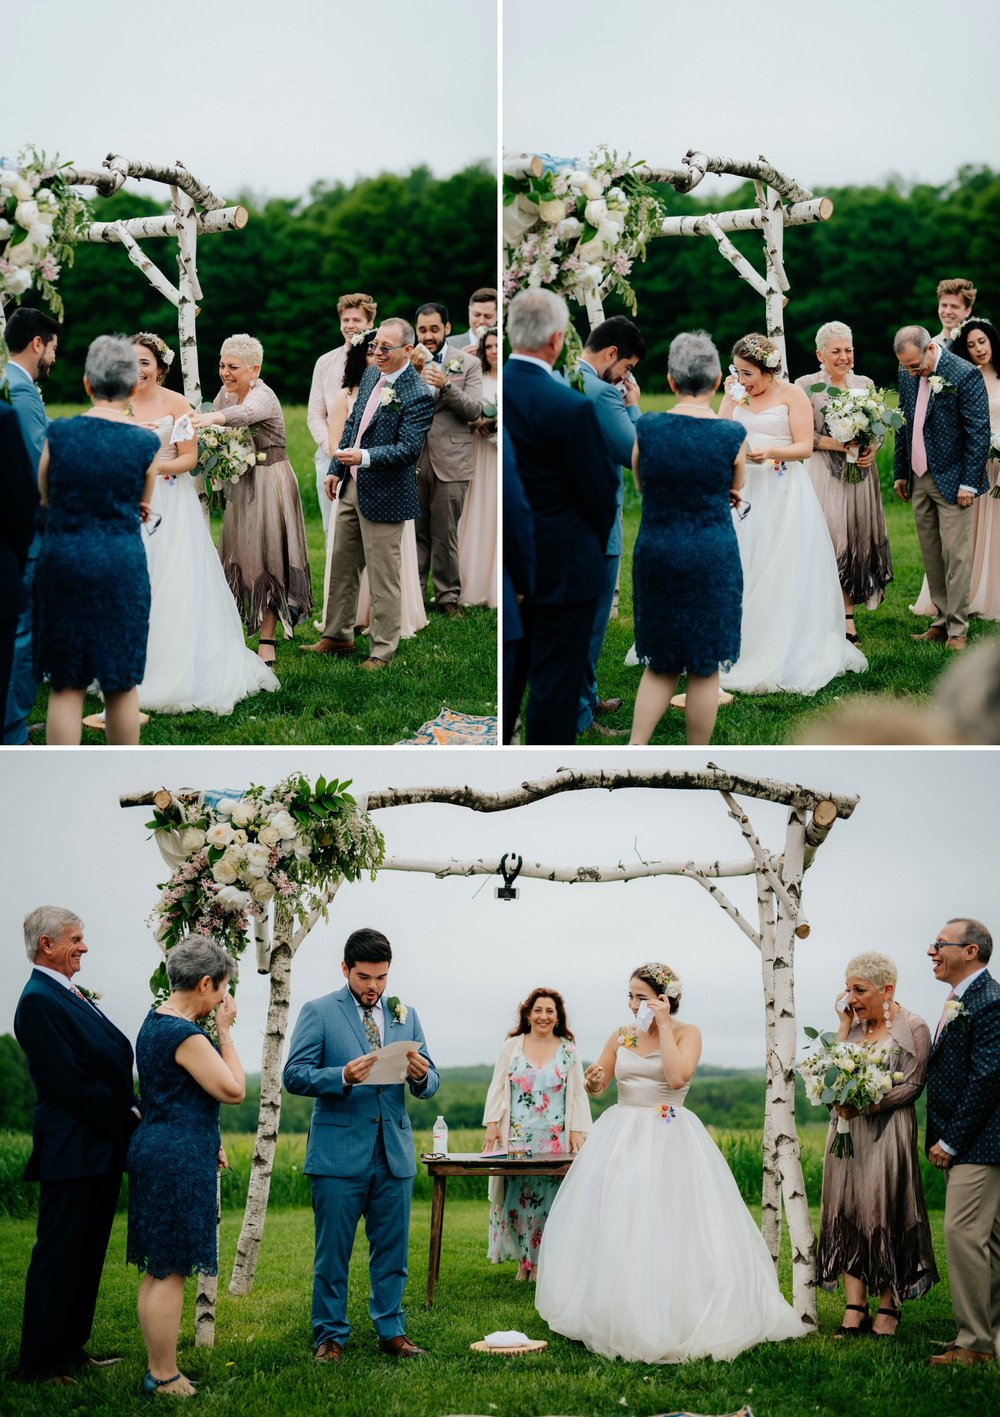 Fiddle Lake Farm Philadelphia Pennsylvania Misty Rustic Wedding with Lush Florals Ceremony Crying